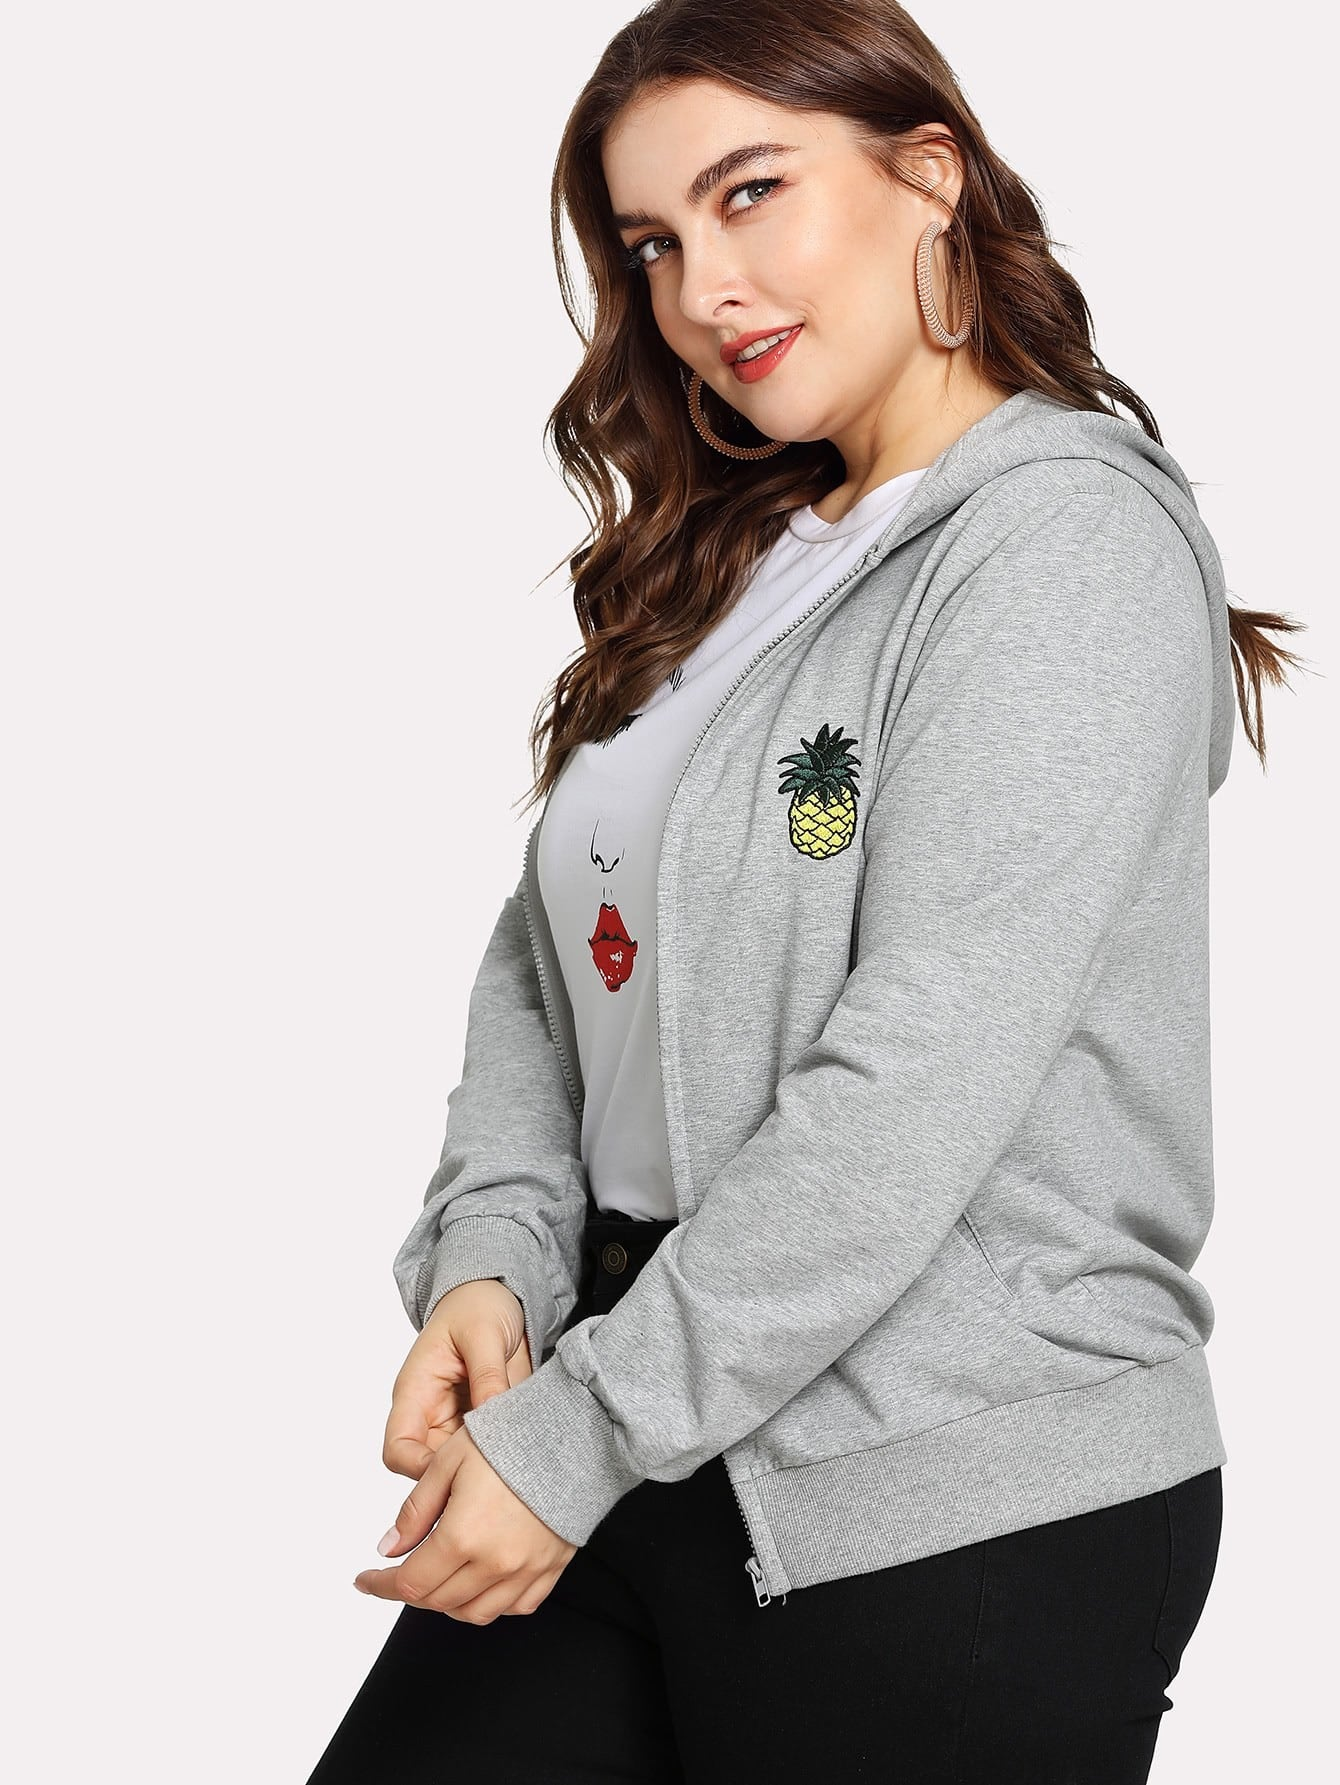 Pineapple Embroidered Zip Up Hooded Jacket champion hooded jacket